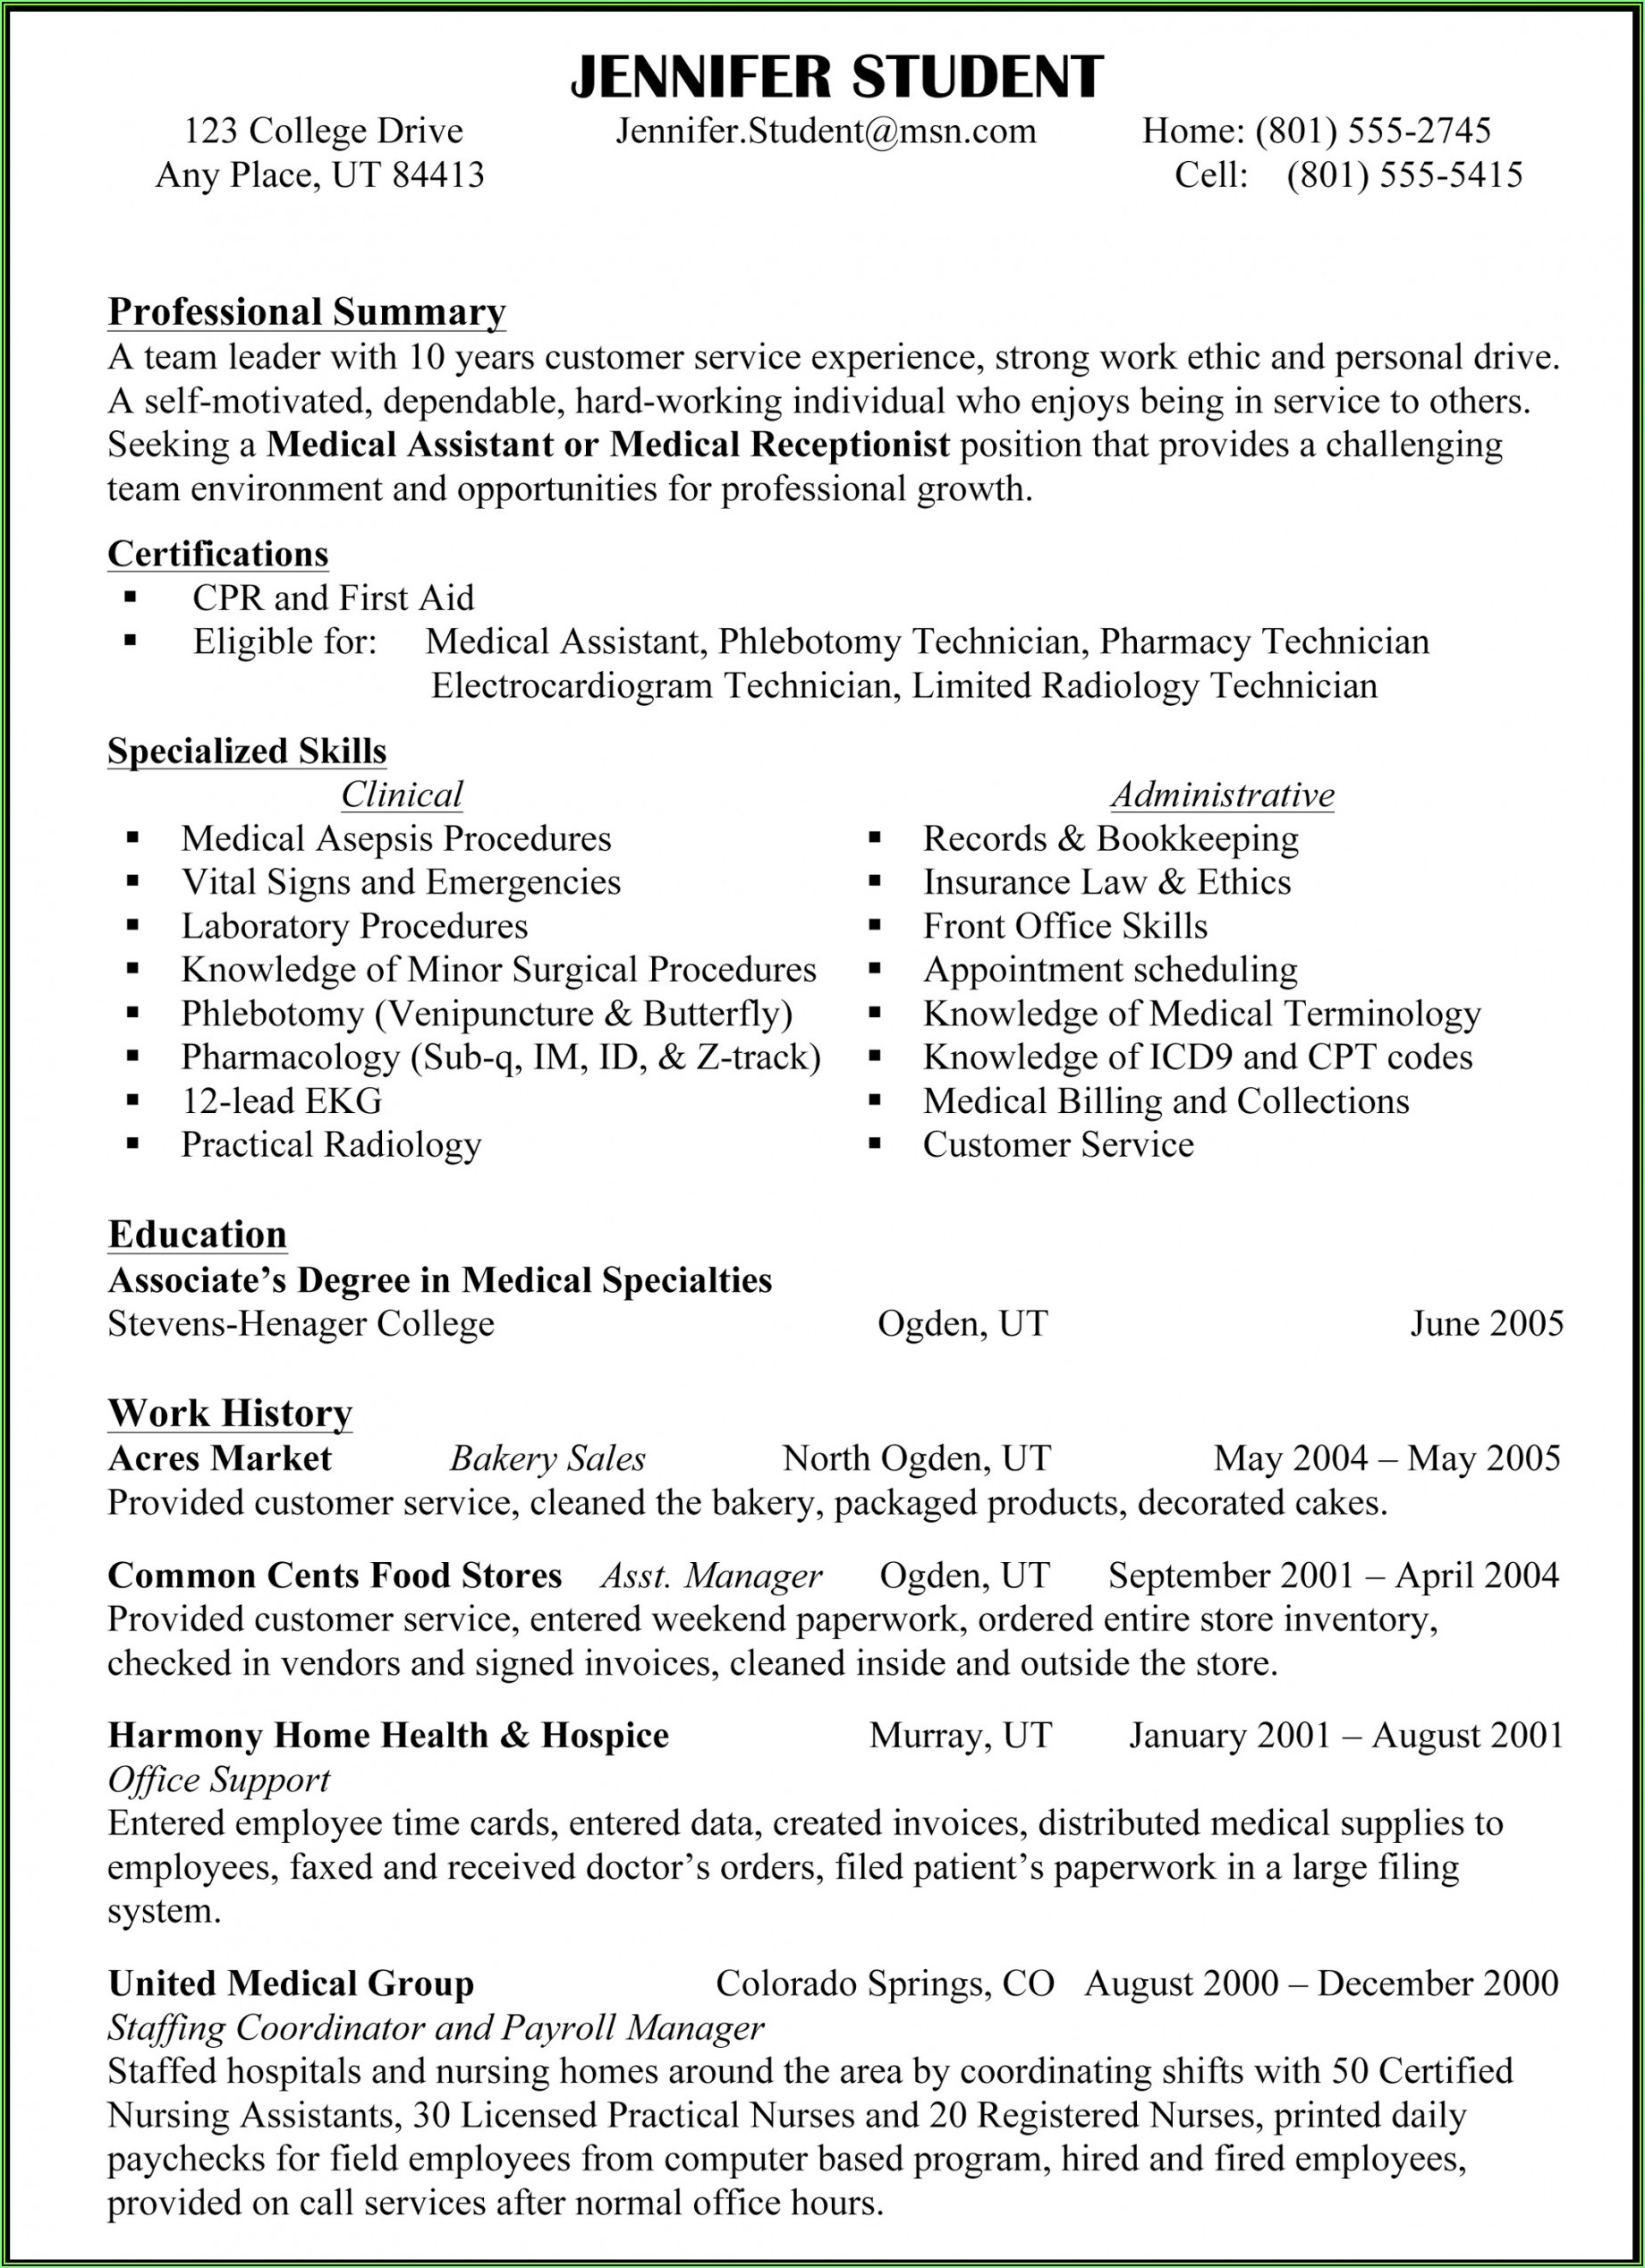 Show Me Some Resume Samples